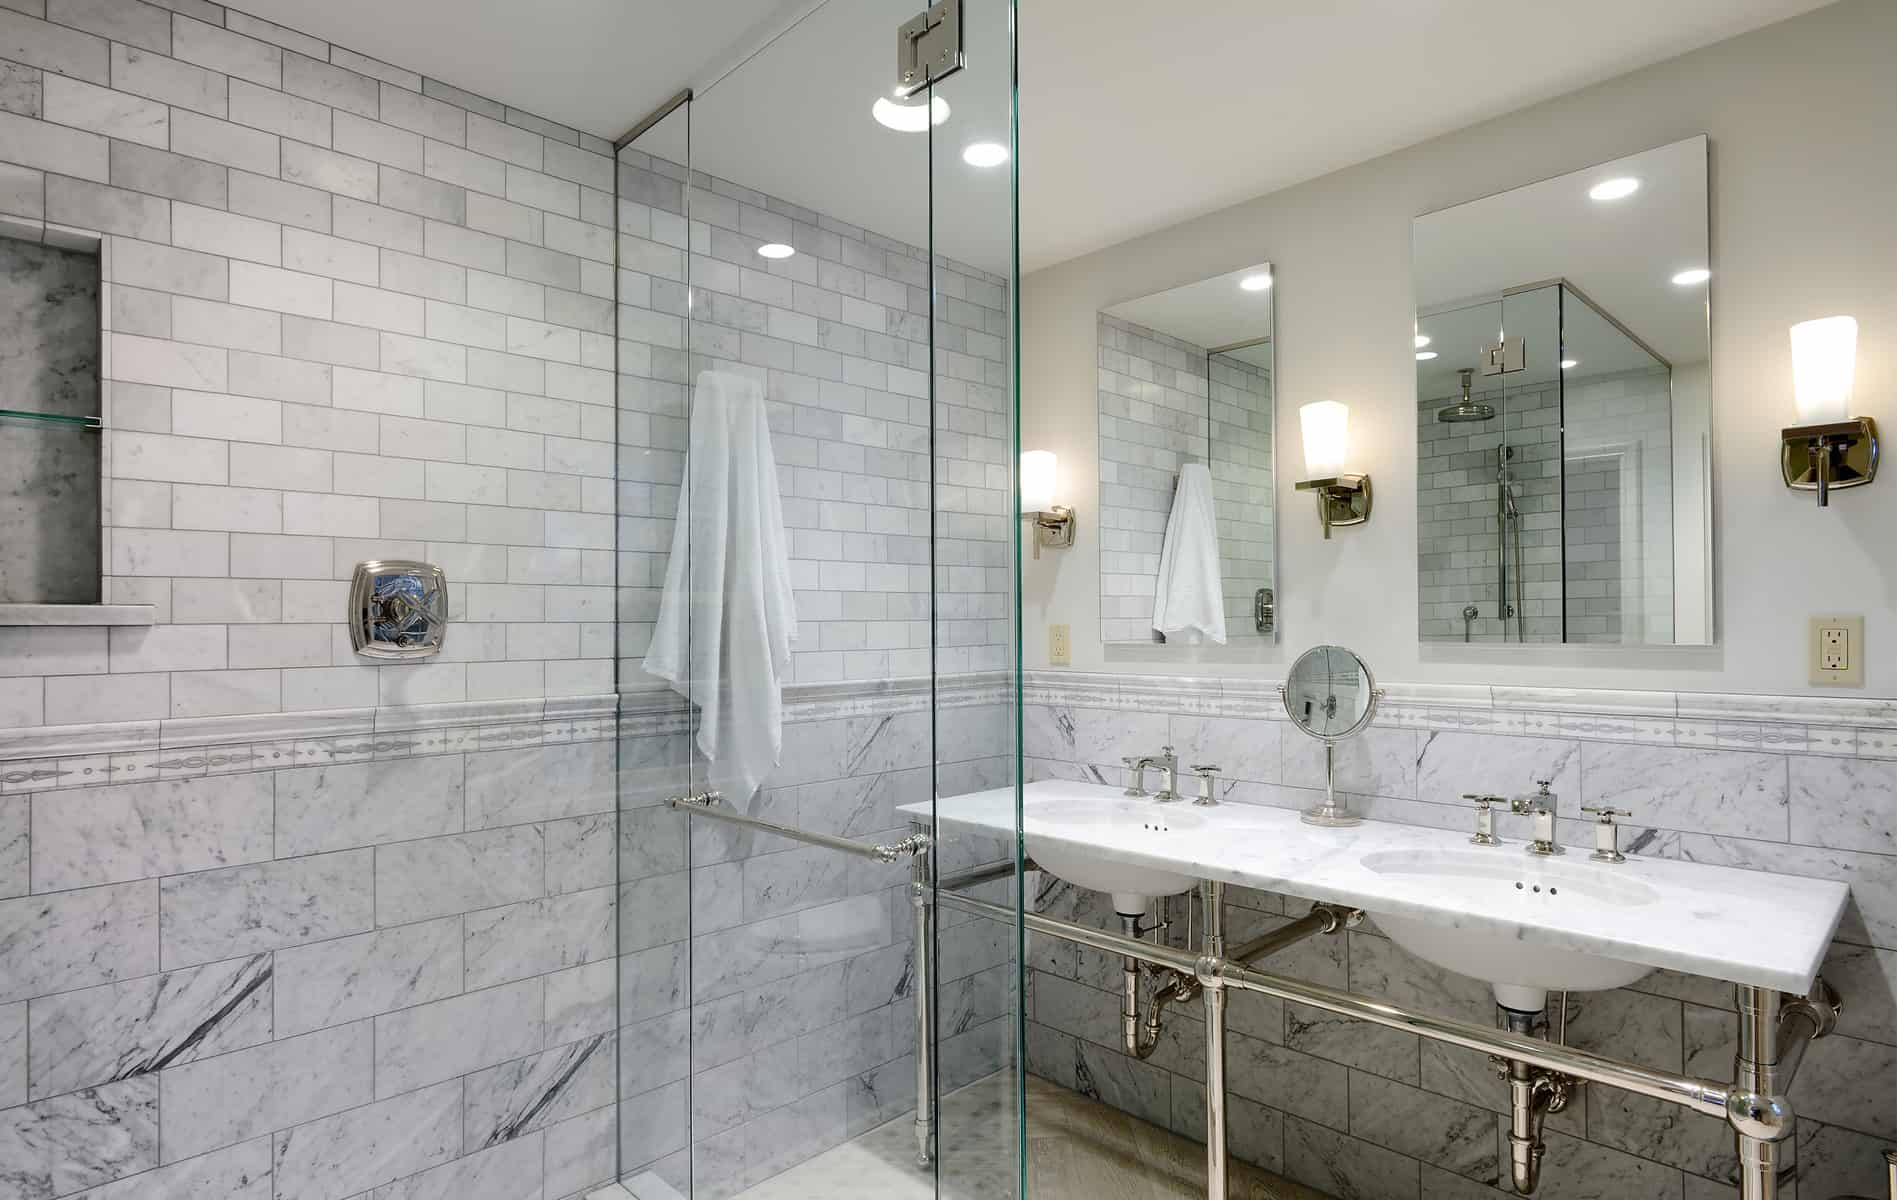 Smart Strategies For Bathroom Remodeling Biederman Real - Bathroom remodel on a budget pictures